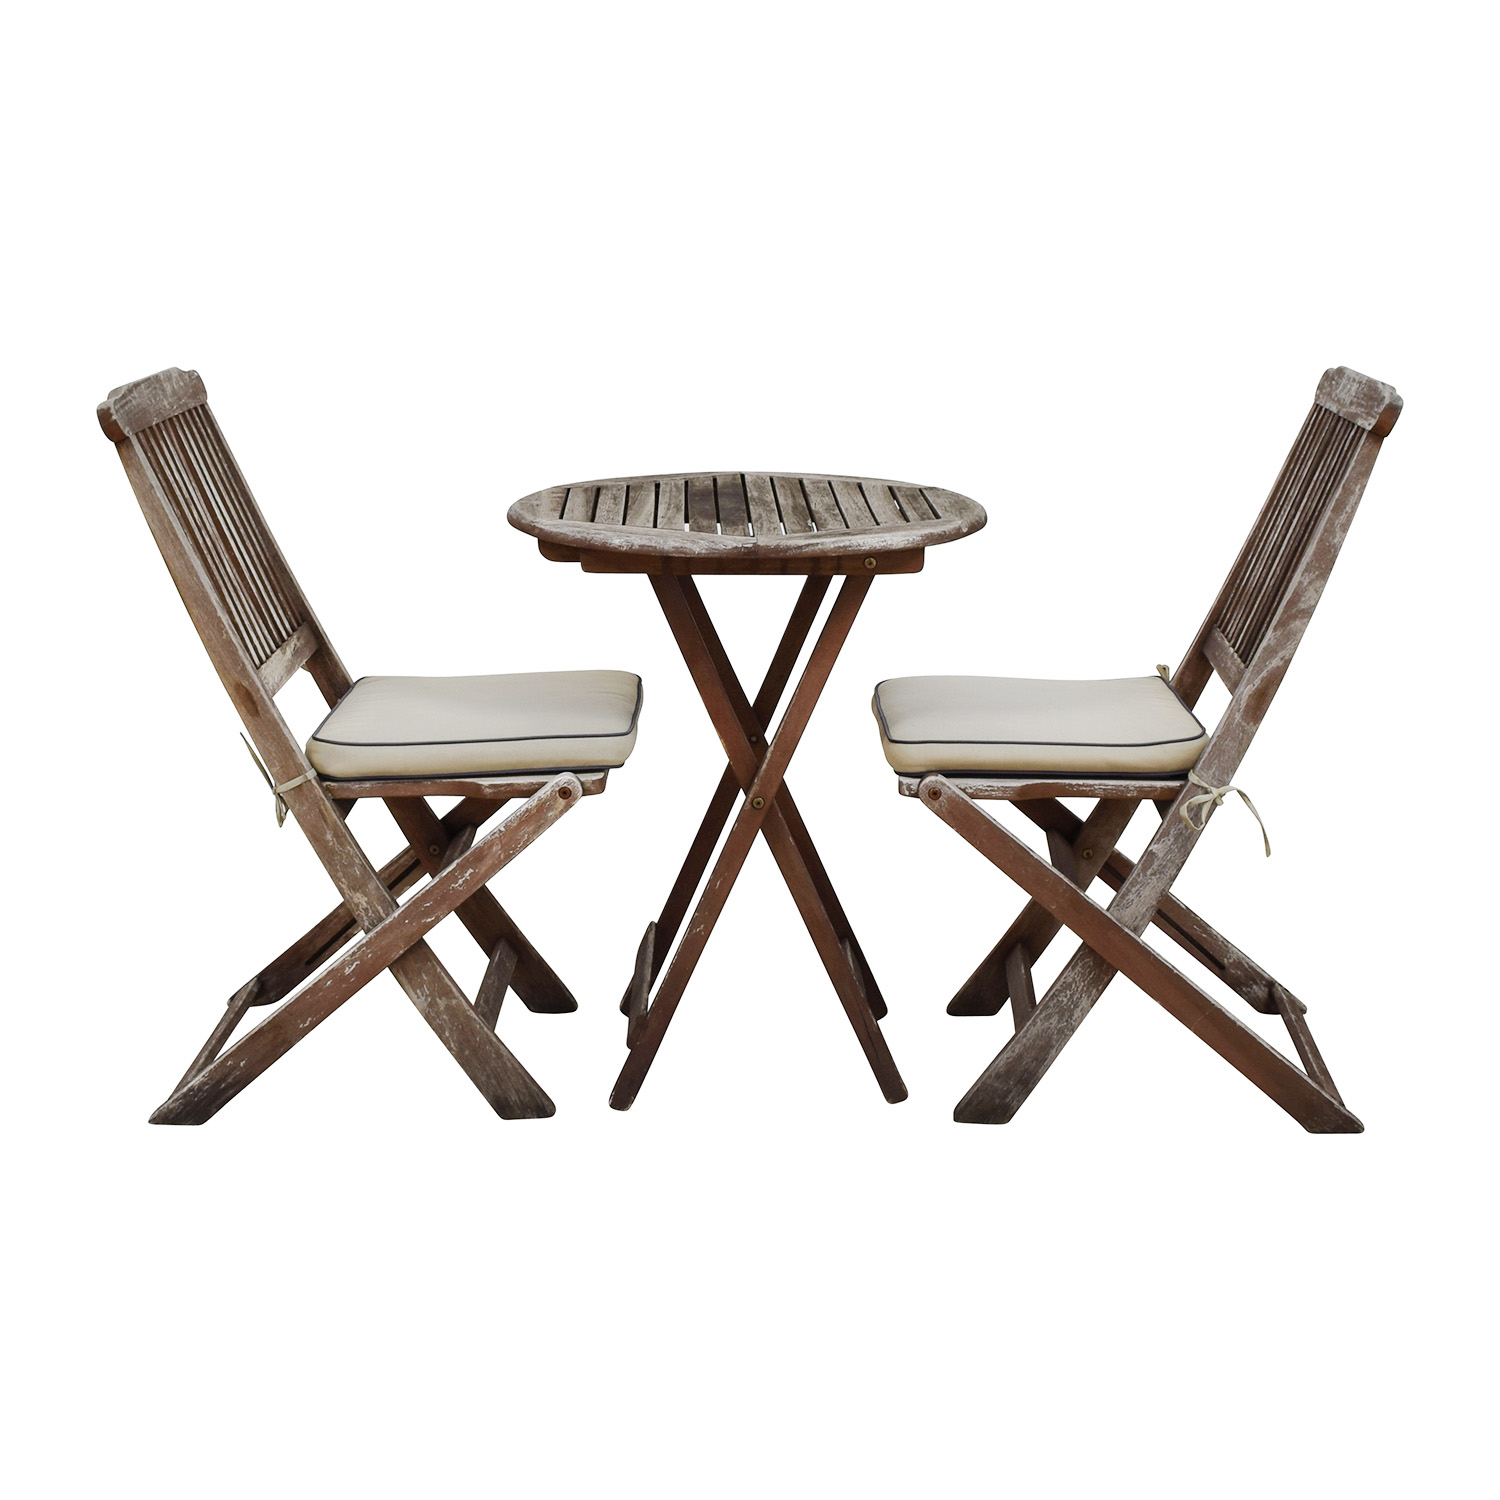 buy Outdoor Interiors Outdoor Interiors Rustic Patio Dining Table and Chairs online